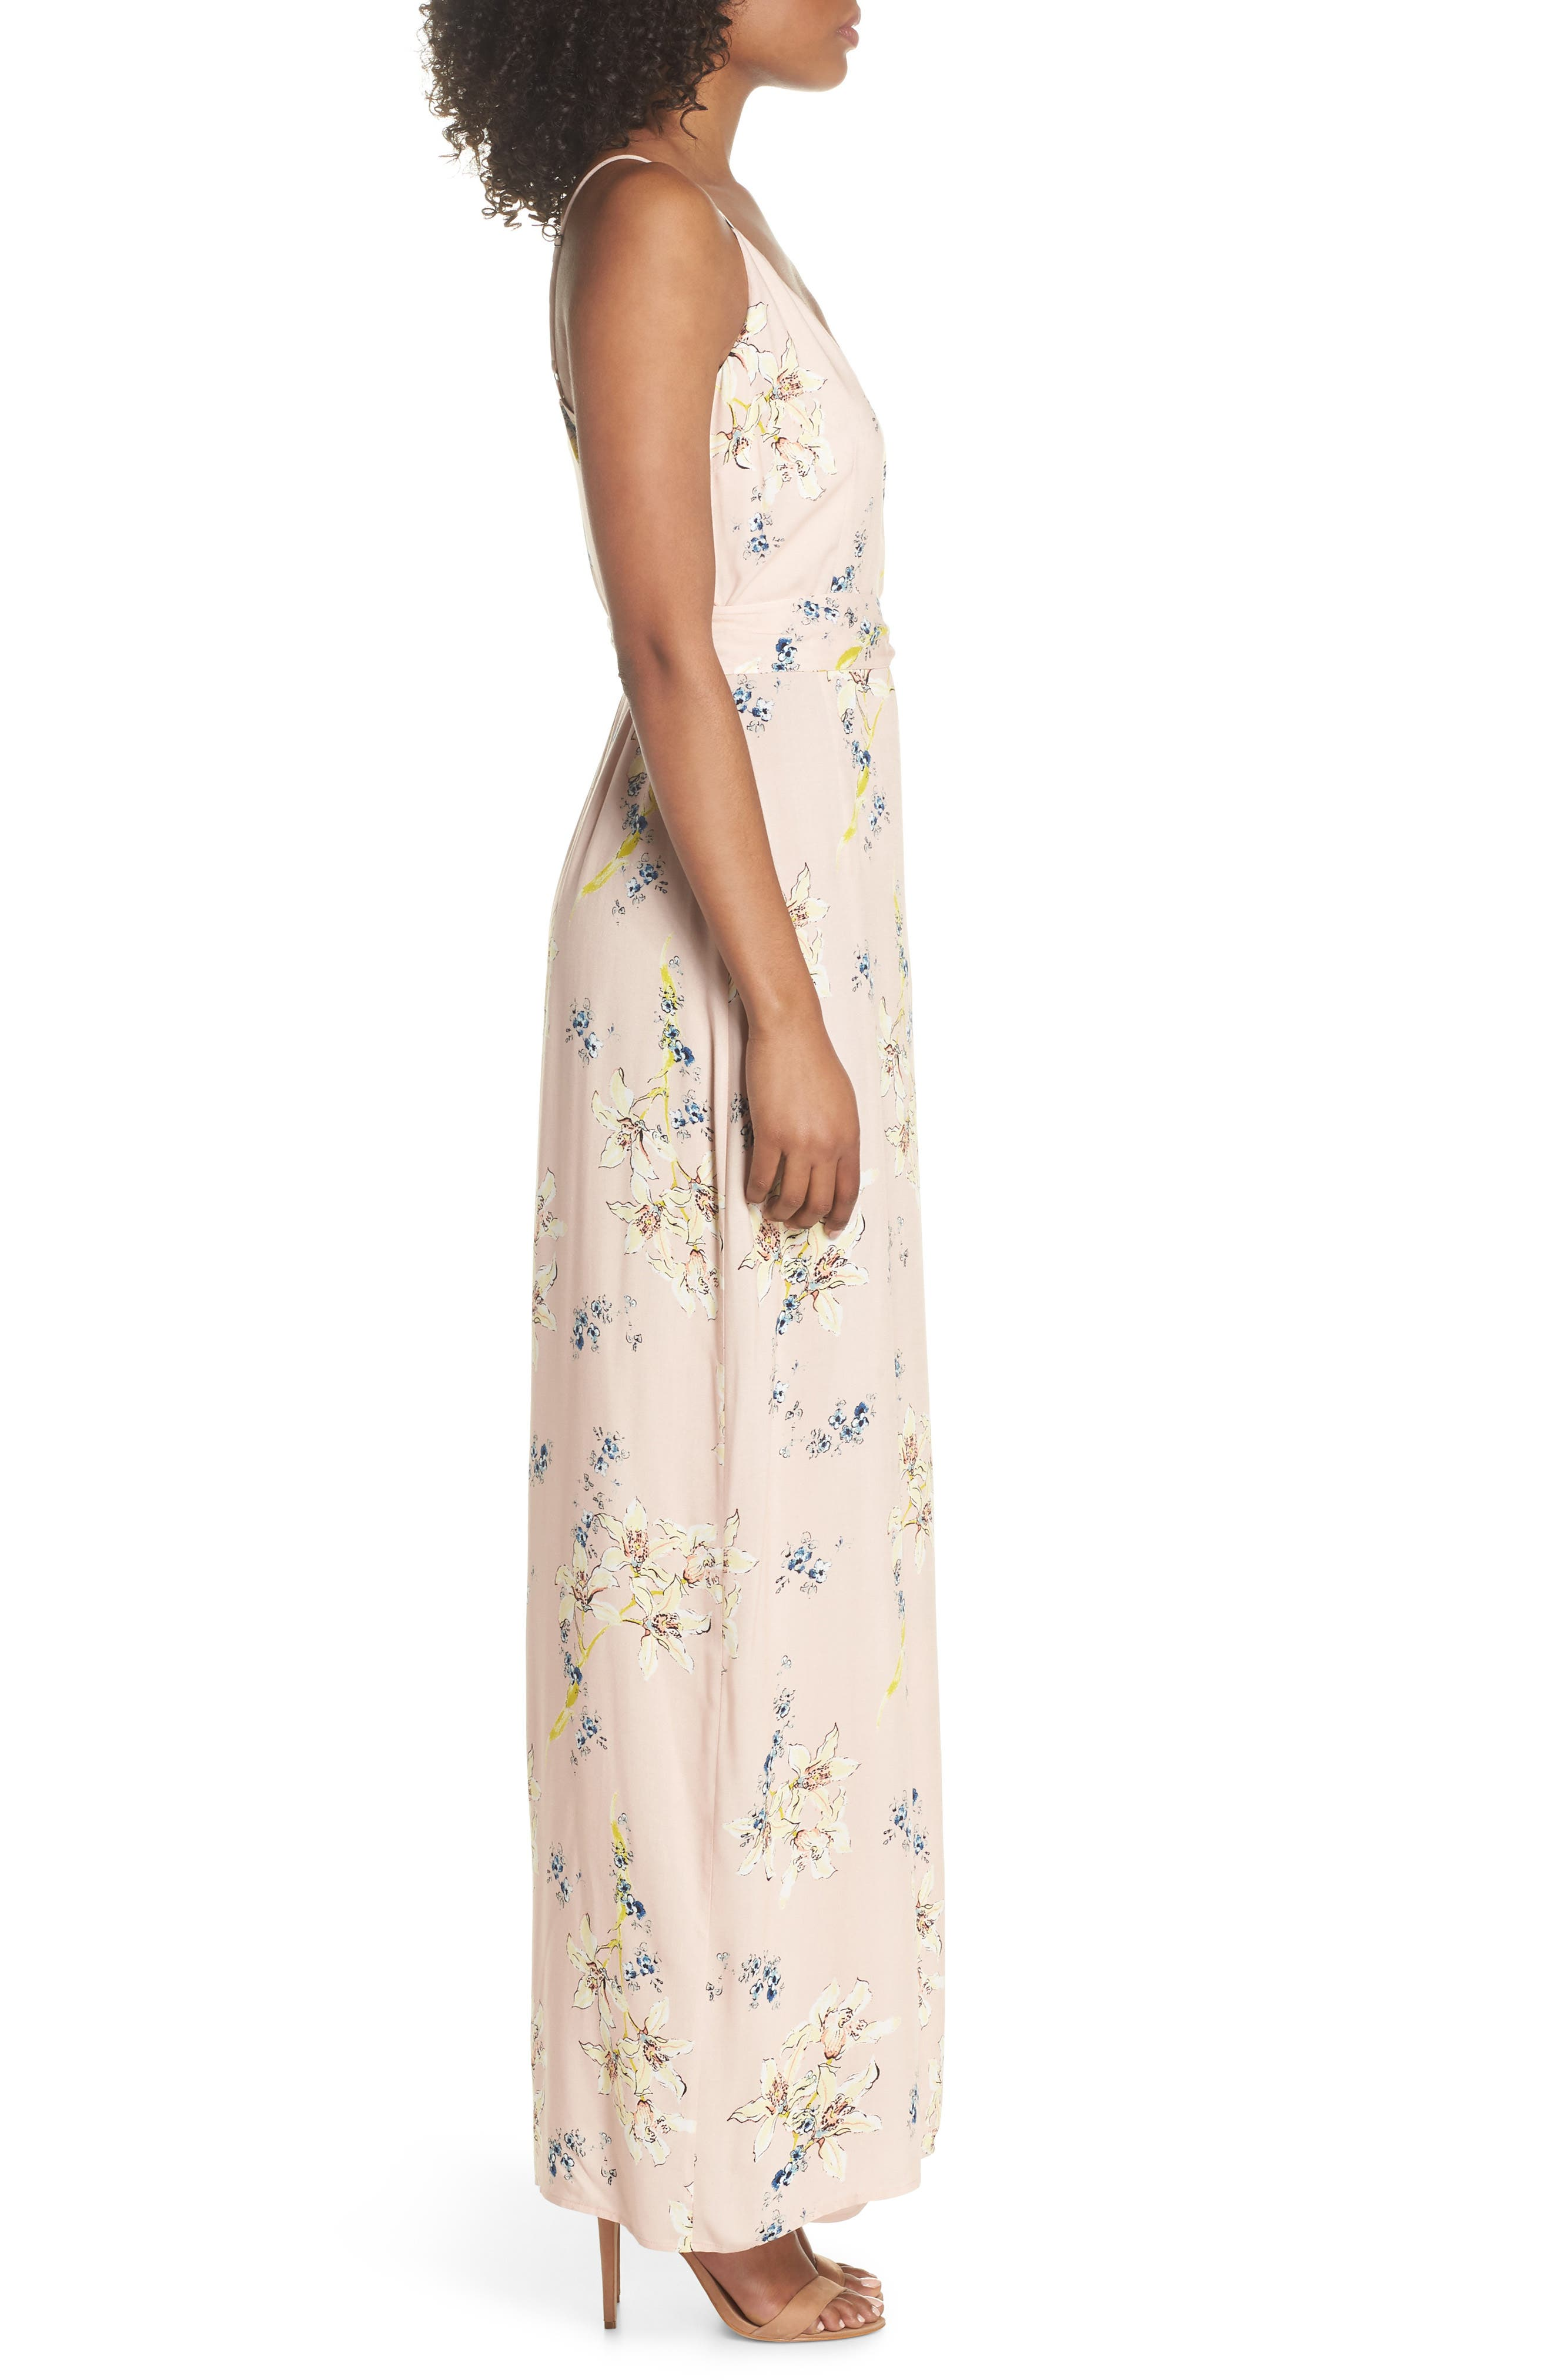 Regina Floral Print Maxi Dress,                             Alternate thumbnail 3, color,                             700